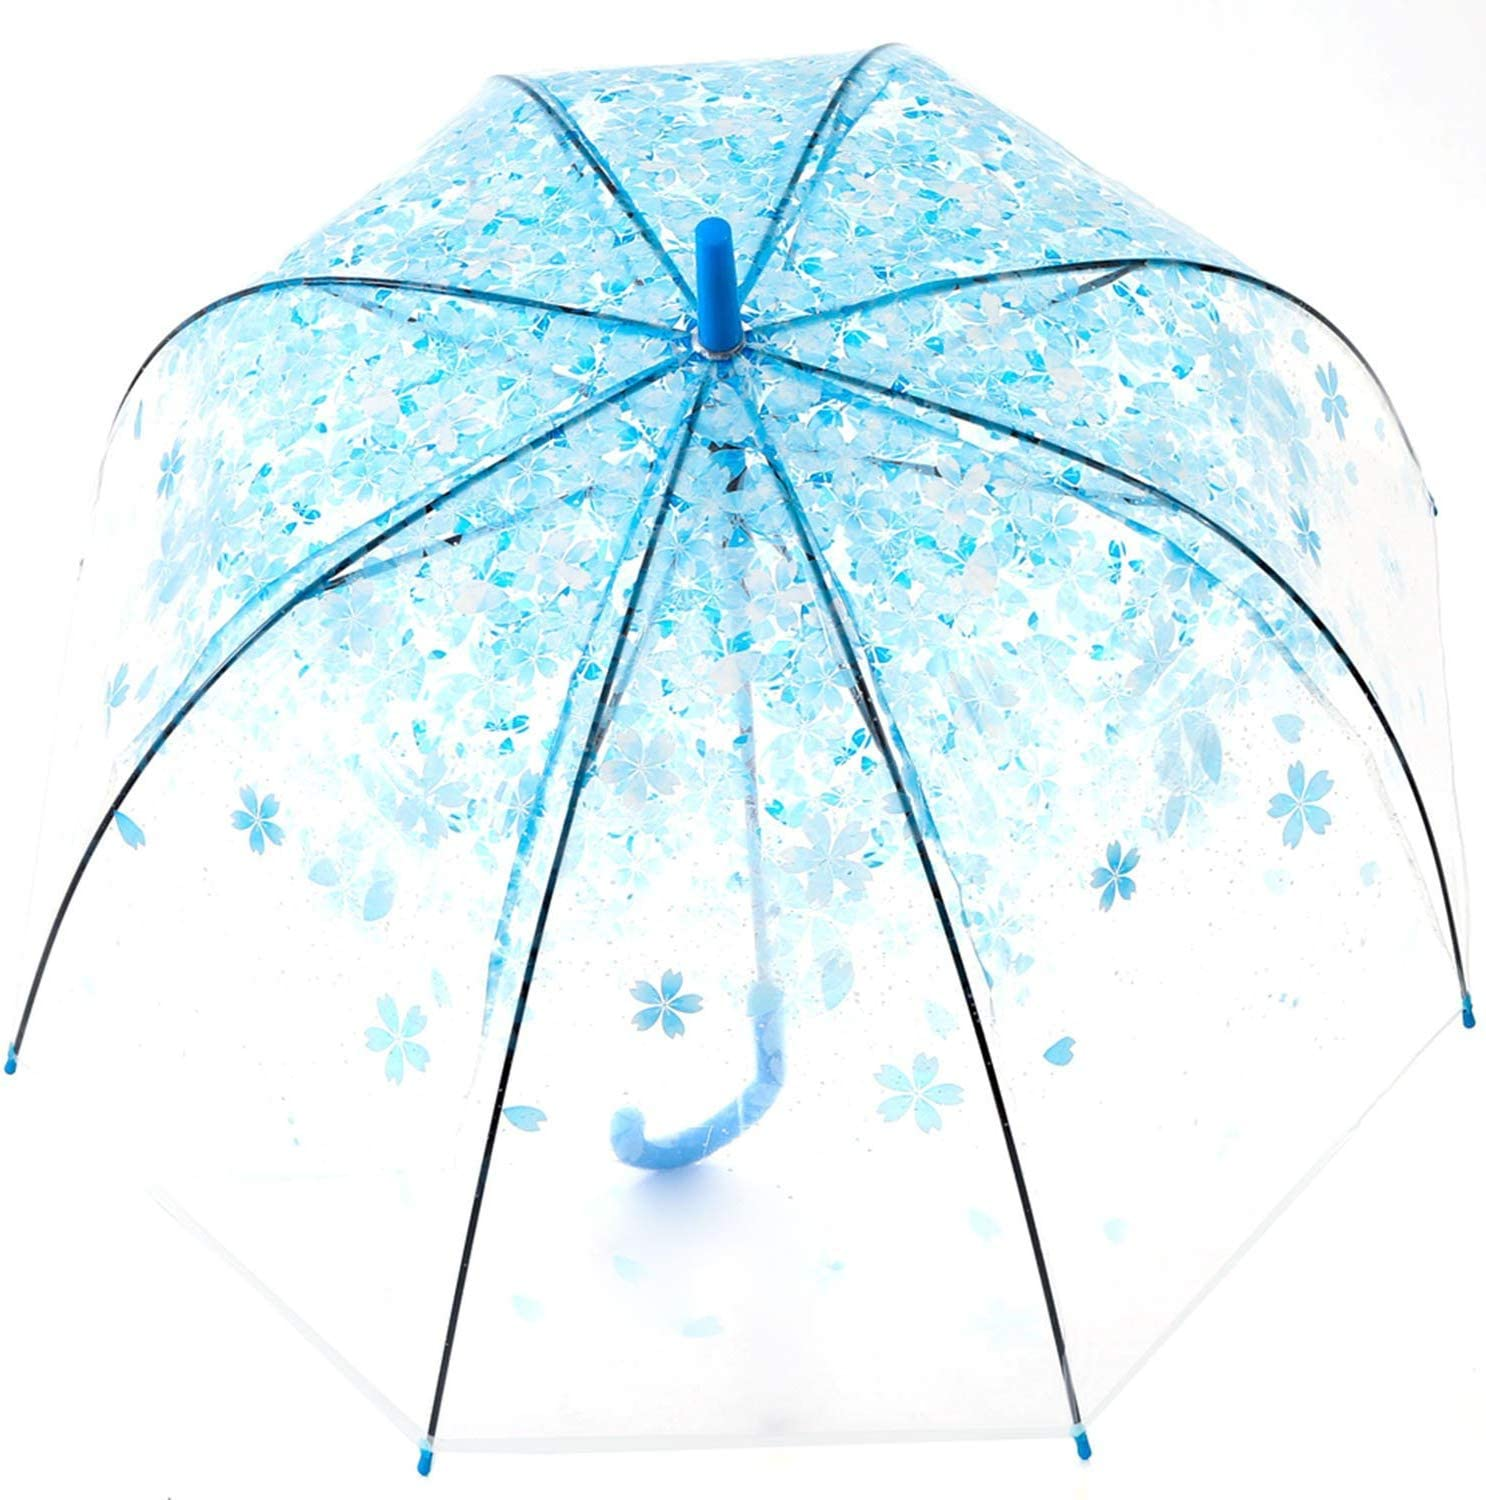 Travel Camping Windproof and Rainproof Half Automatic /& J-Handle Perfect for Women Kids Fashion Cherry Blossom Pattern Transparent Umbrella